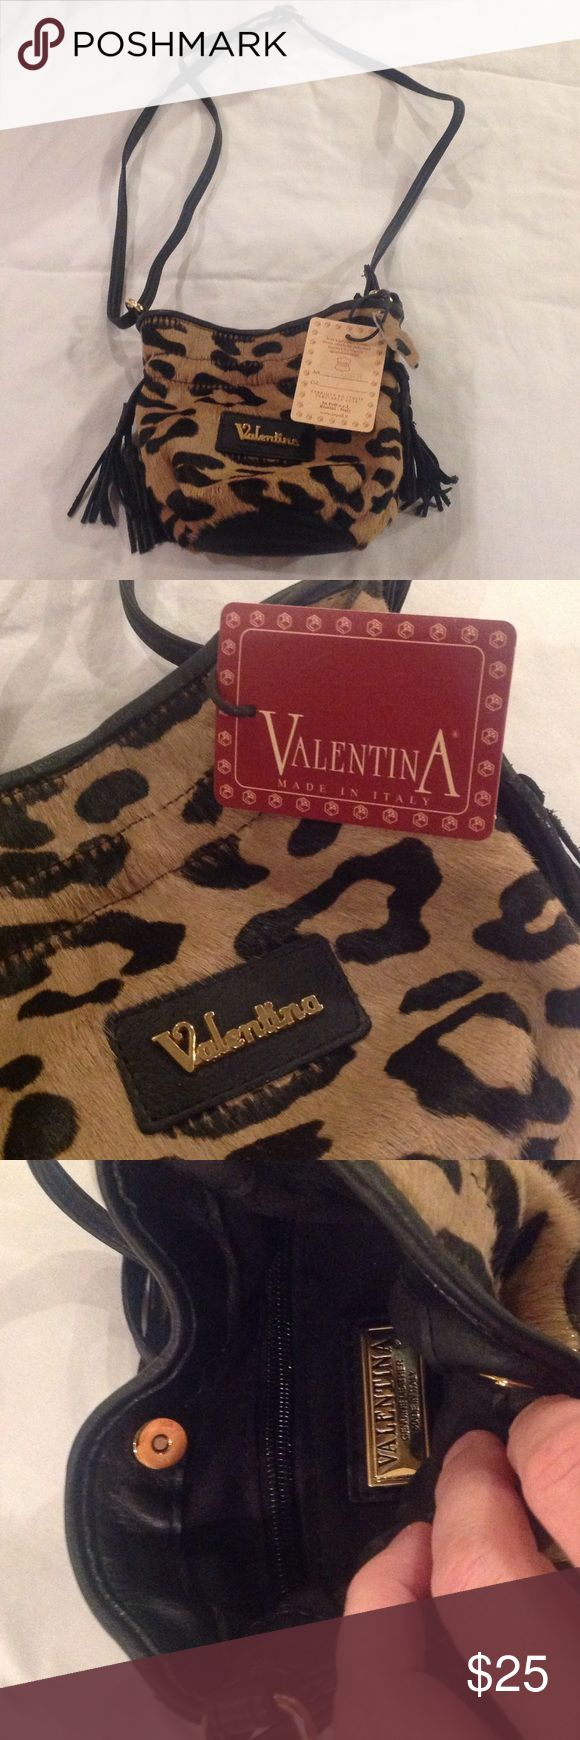 "Small Valentina ANIMAL PRINT Bag Small (about 6""x6"") pony hair bag by Valentina with animal print. Perfect for a night out! Valentina Bags"